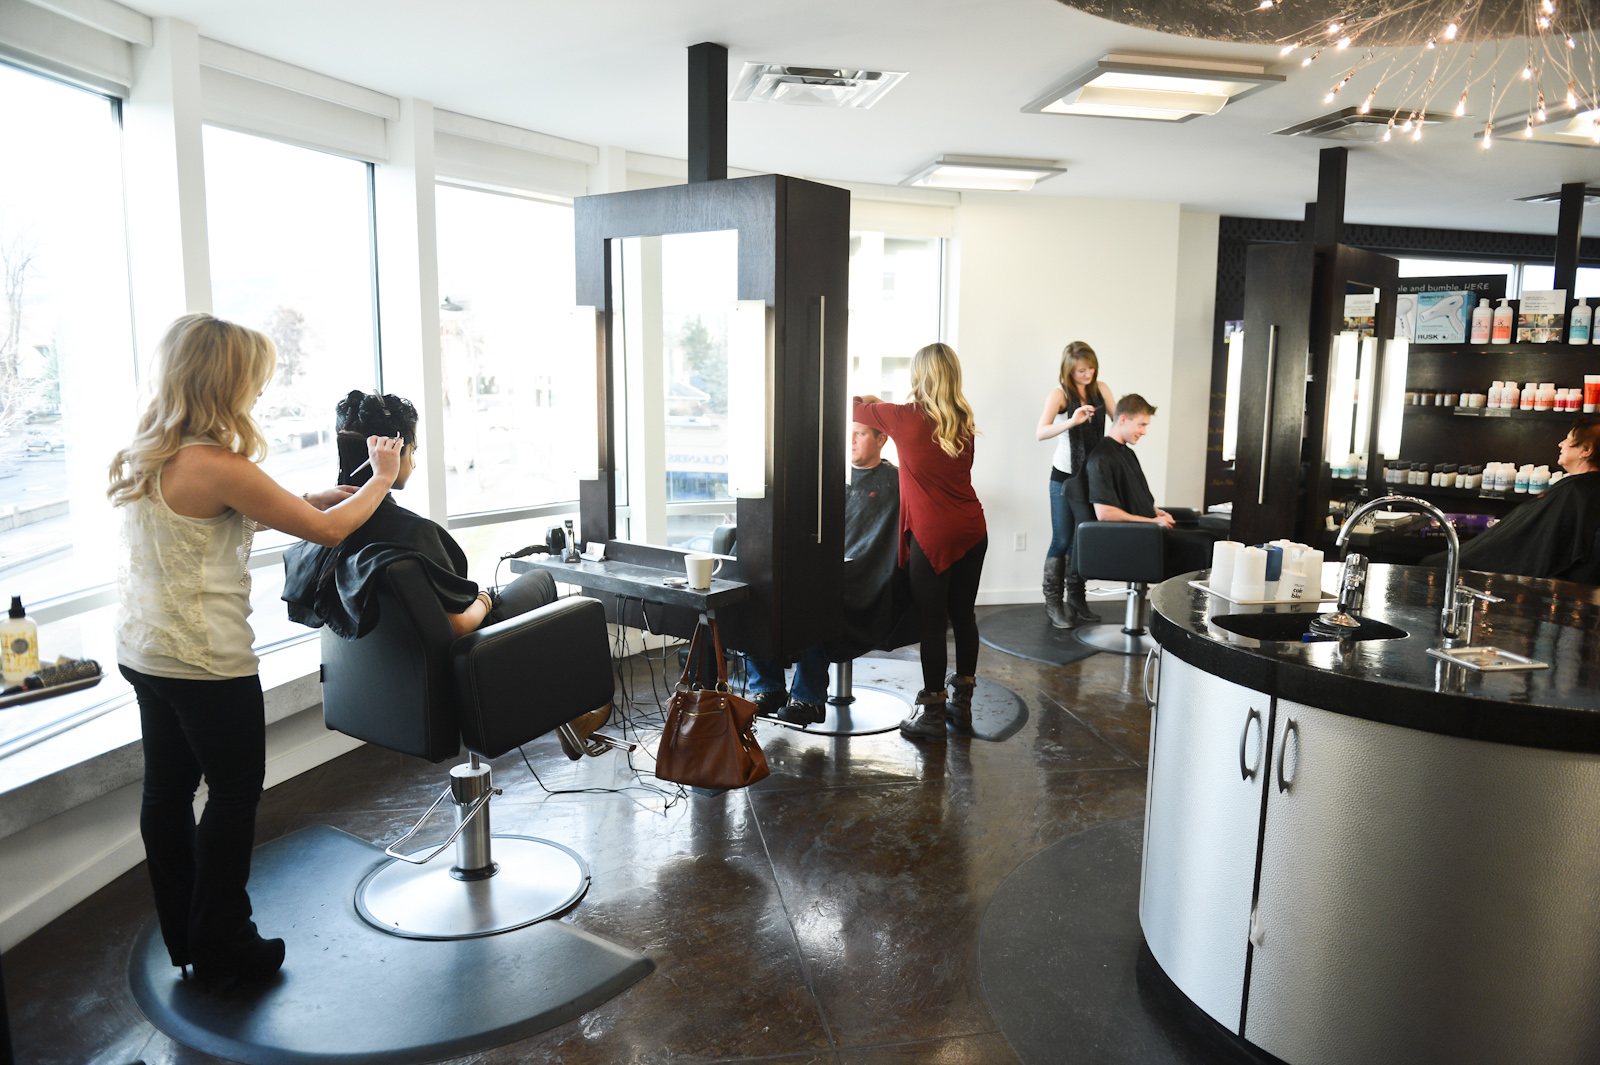 Head turning hair styles fringe hair salon kelowna for A 1 beauty salon